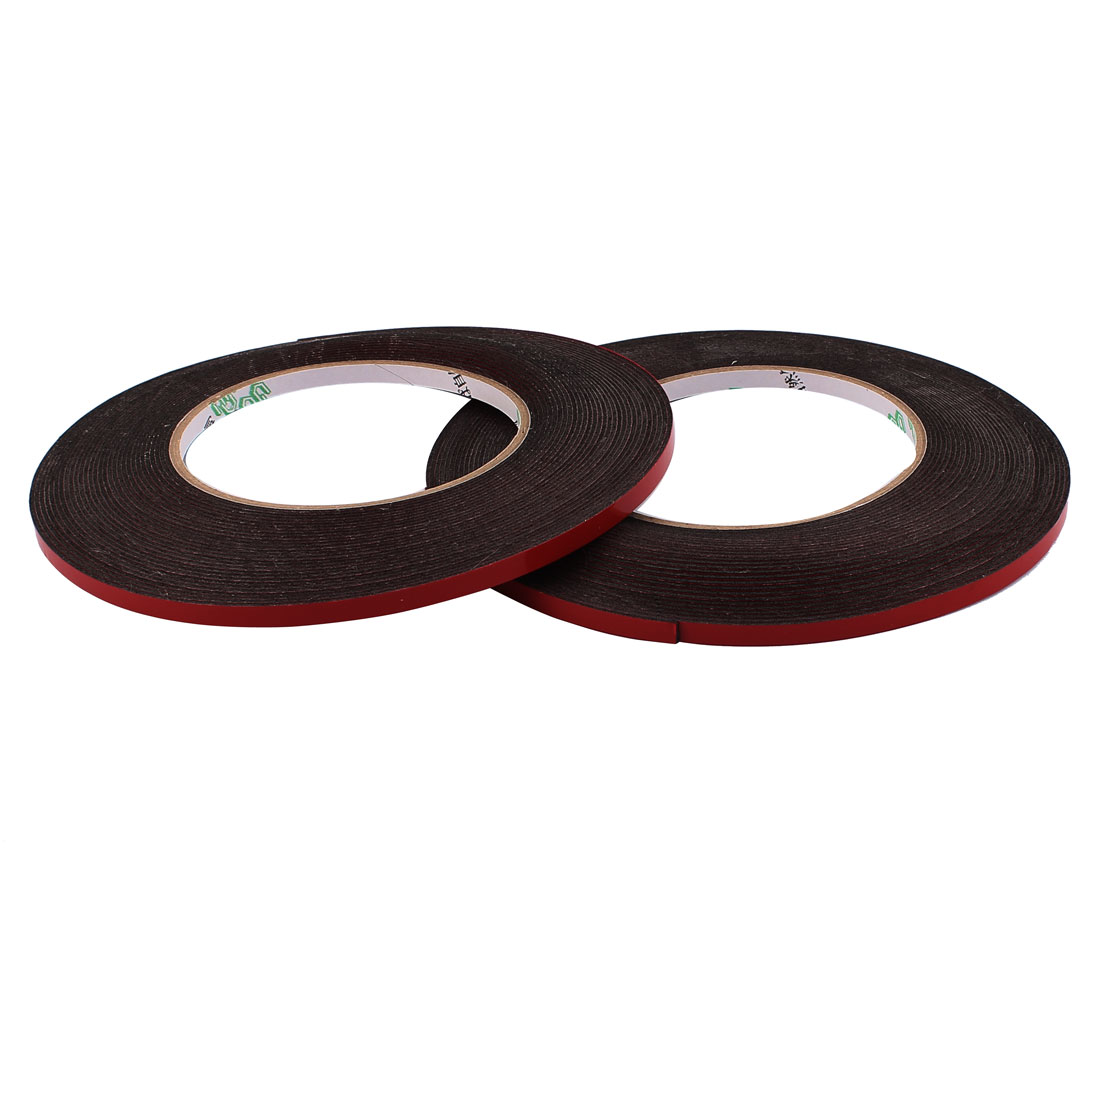 2 Pcs 5MM Width 10M Length 1MM Thick Dual Sided Sealing Shockproof Sponge Tape